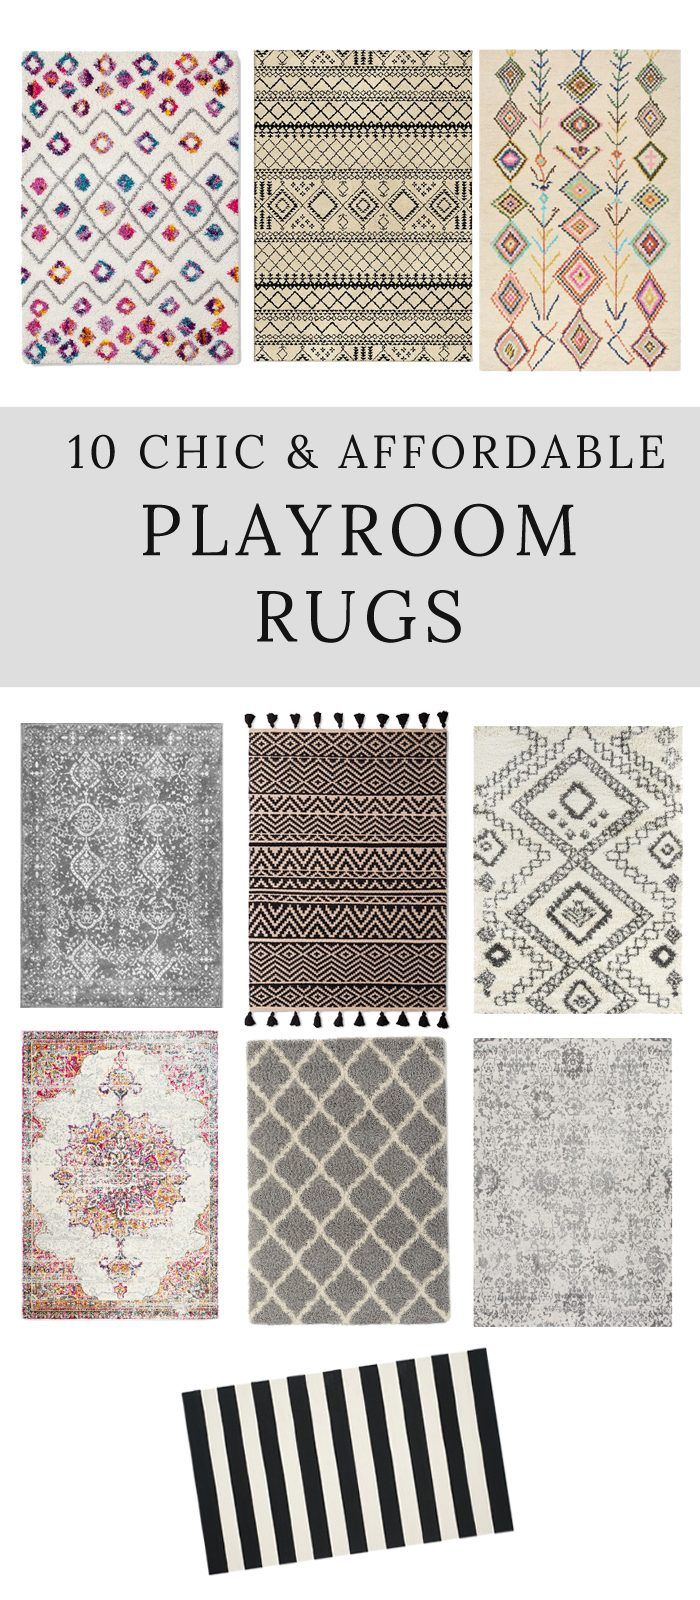 Looking for a chic and affordable playroom rug? Here is a great roundup of some of the best ones around!